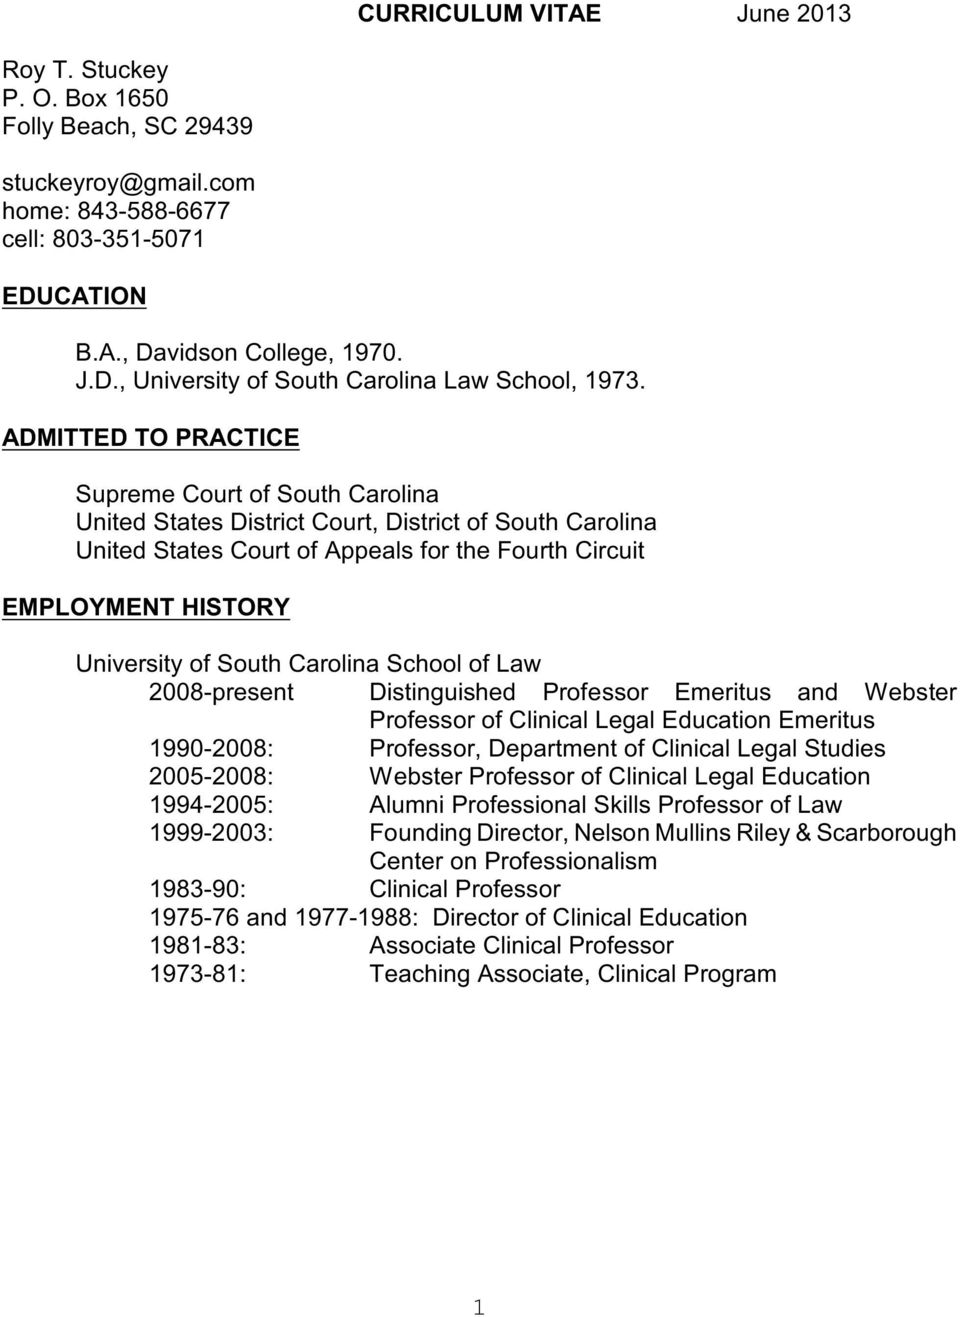 South Carolina School of Law 2008-present Distinguished Professor Emeritus and Webster Professor of Clinical Legal Education Emeritus 1990-2008: Professor, Department of Clinical Legal Studies